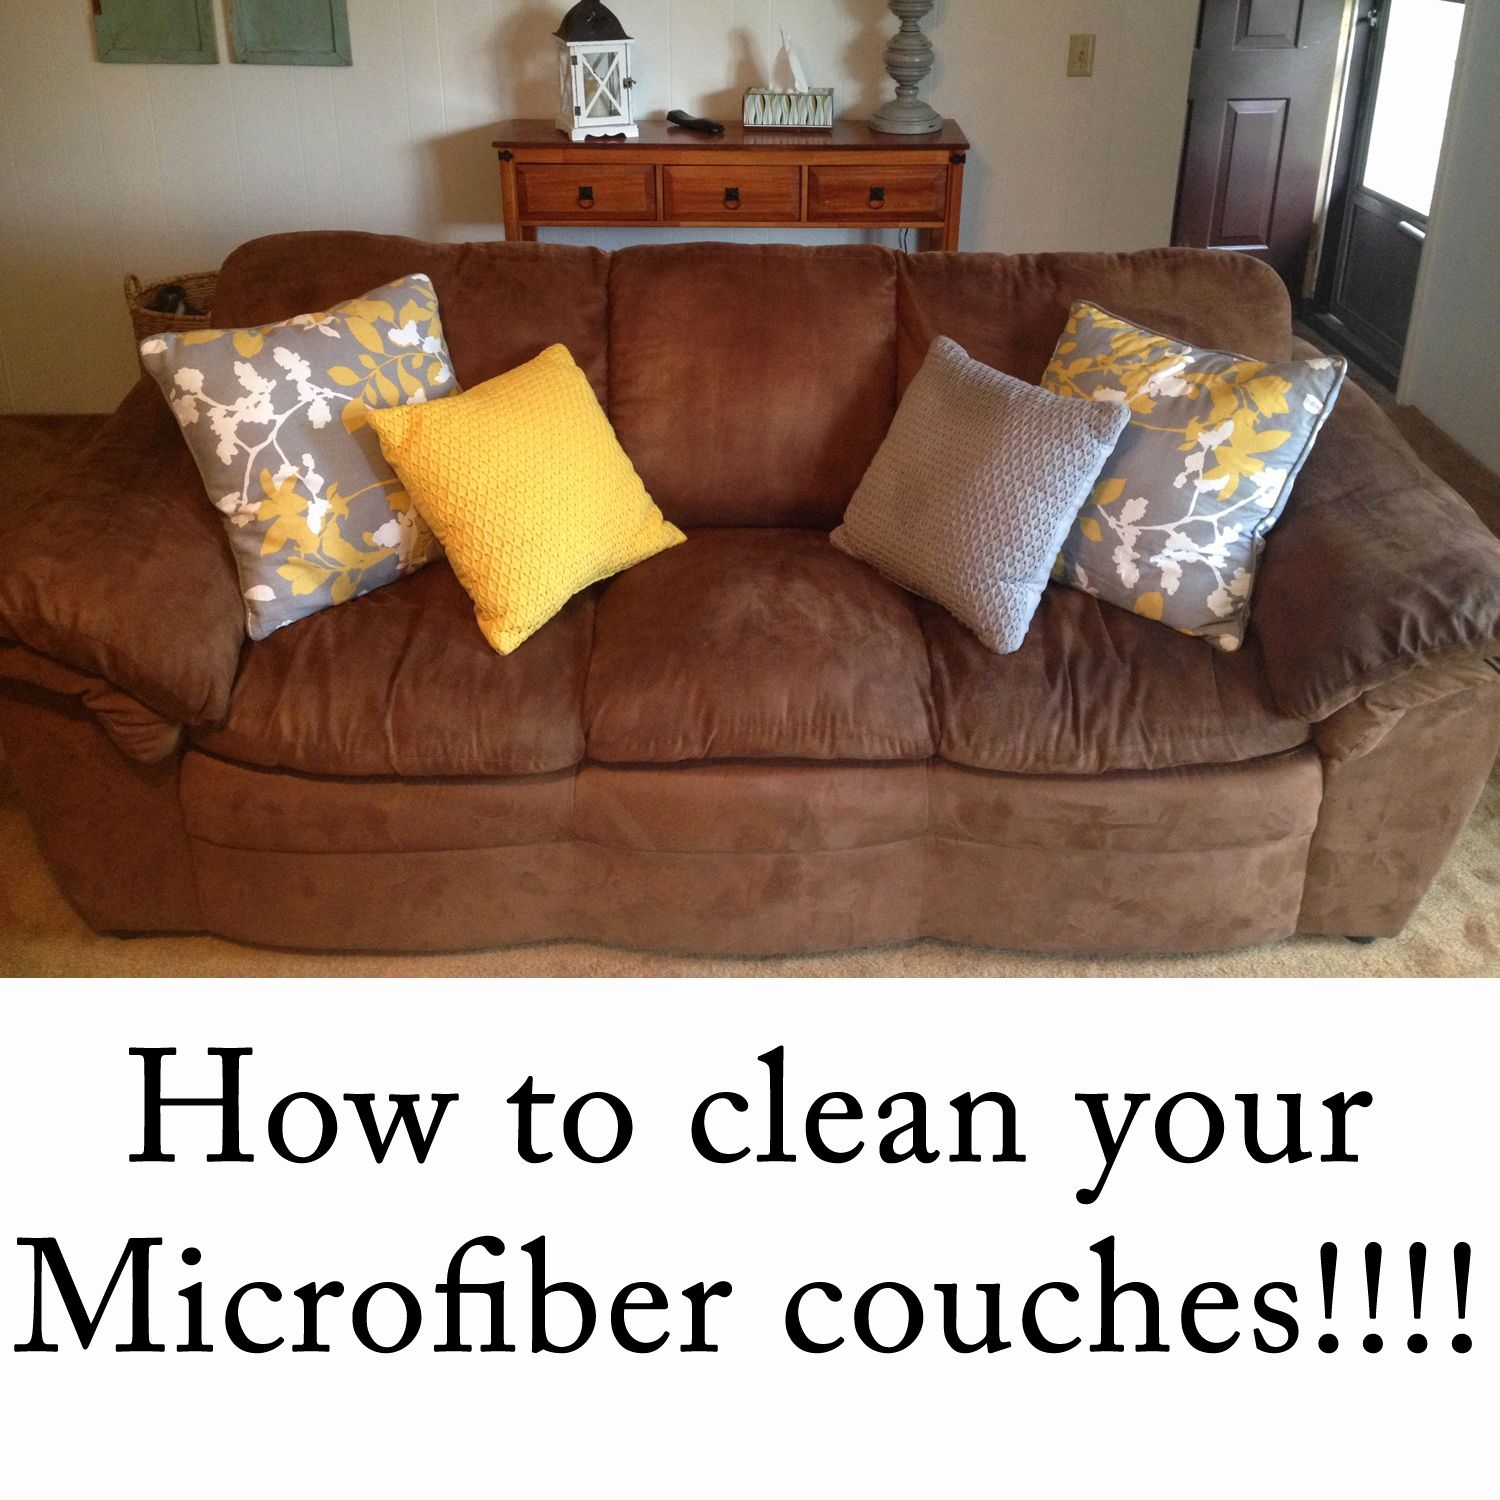 Marvelous What Can I Use To Clean My Sofa Mycoffeepot Org Download Free Architecture Designs Grimeyleaguecom